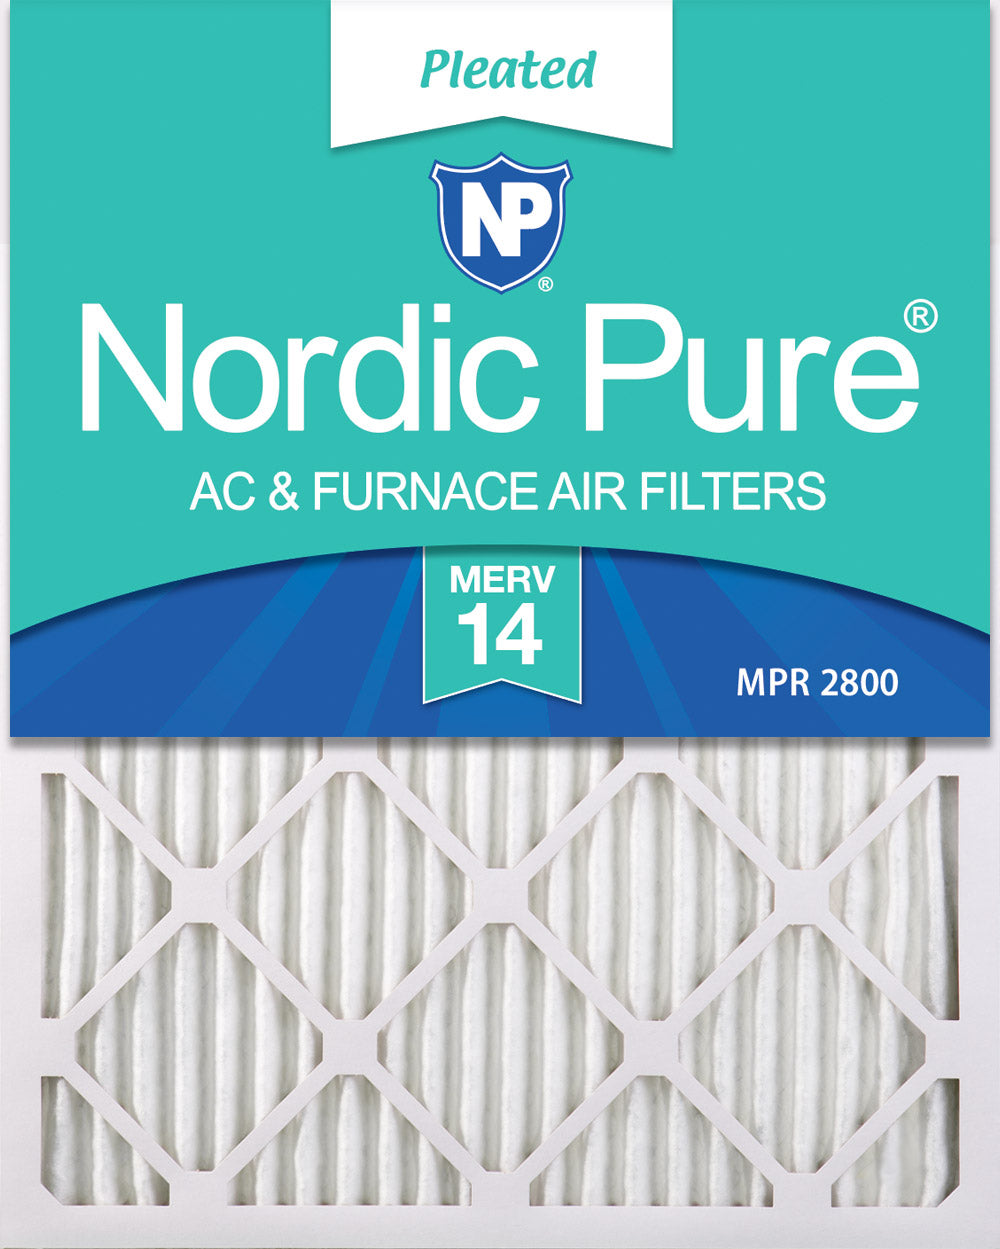 20x24x1 Pleated MERV 14 Air Filters 2 Pack